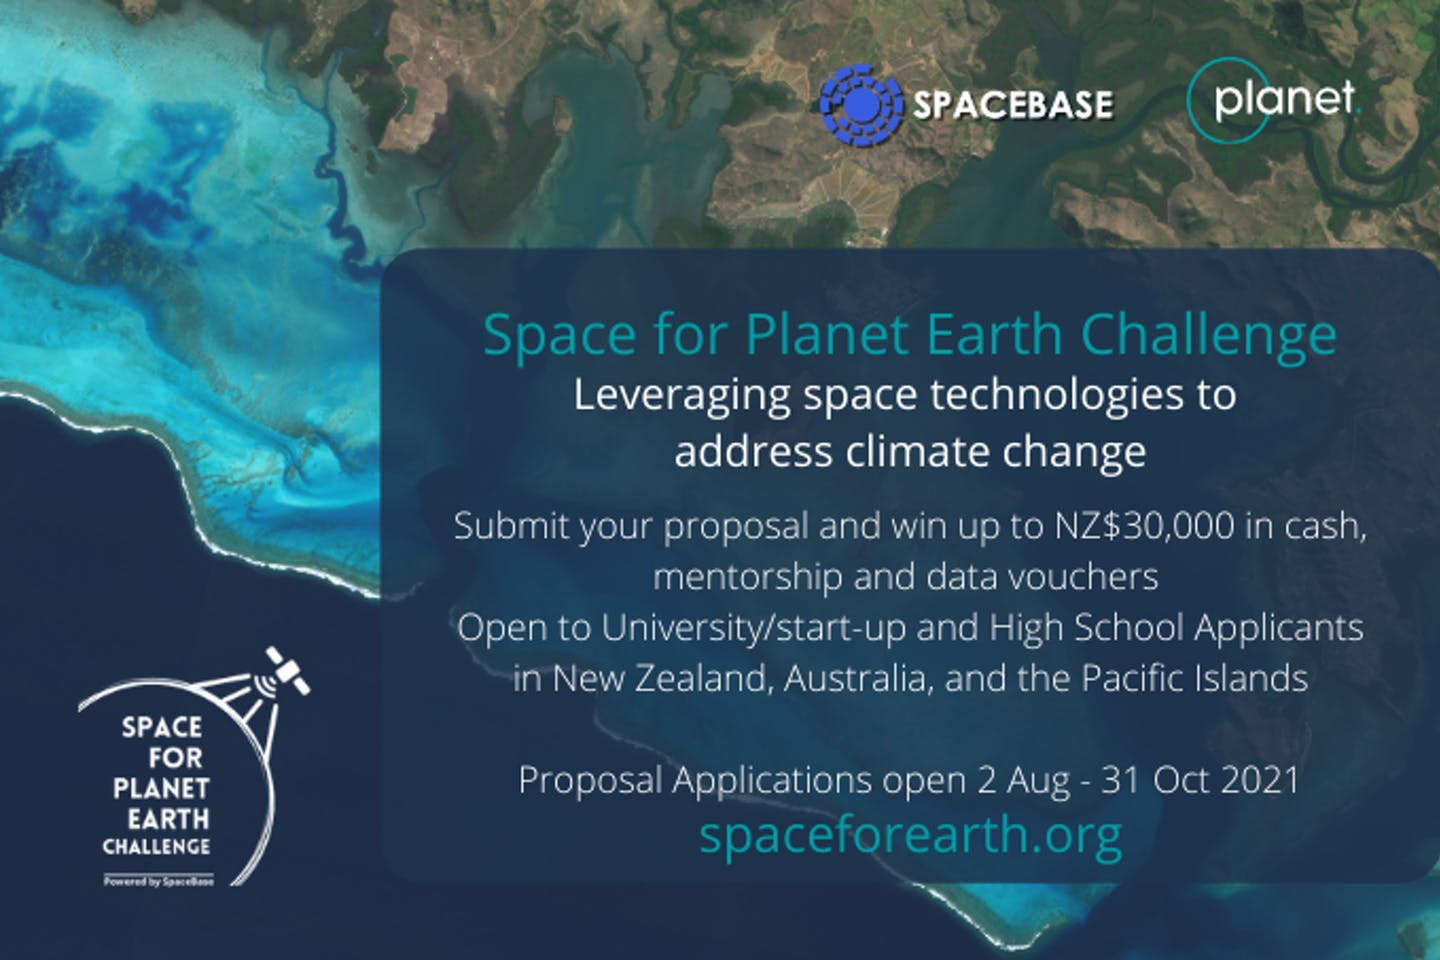 SpaceBase x Planet's Space for Planet Earth Challenge Call For Application